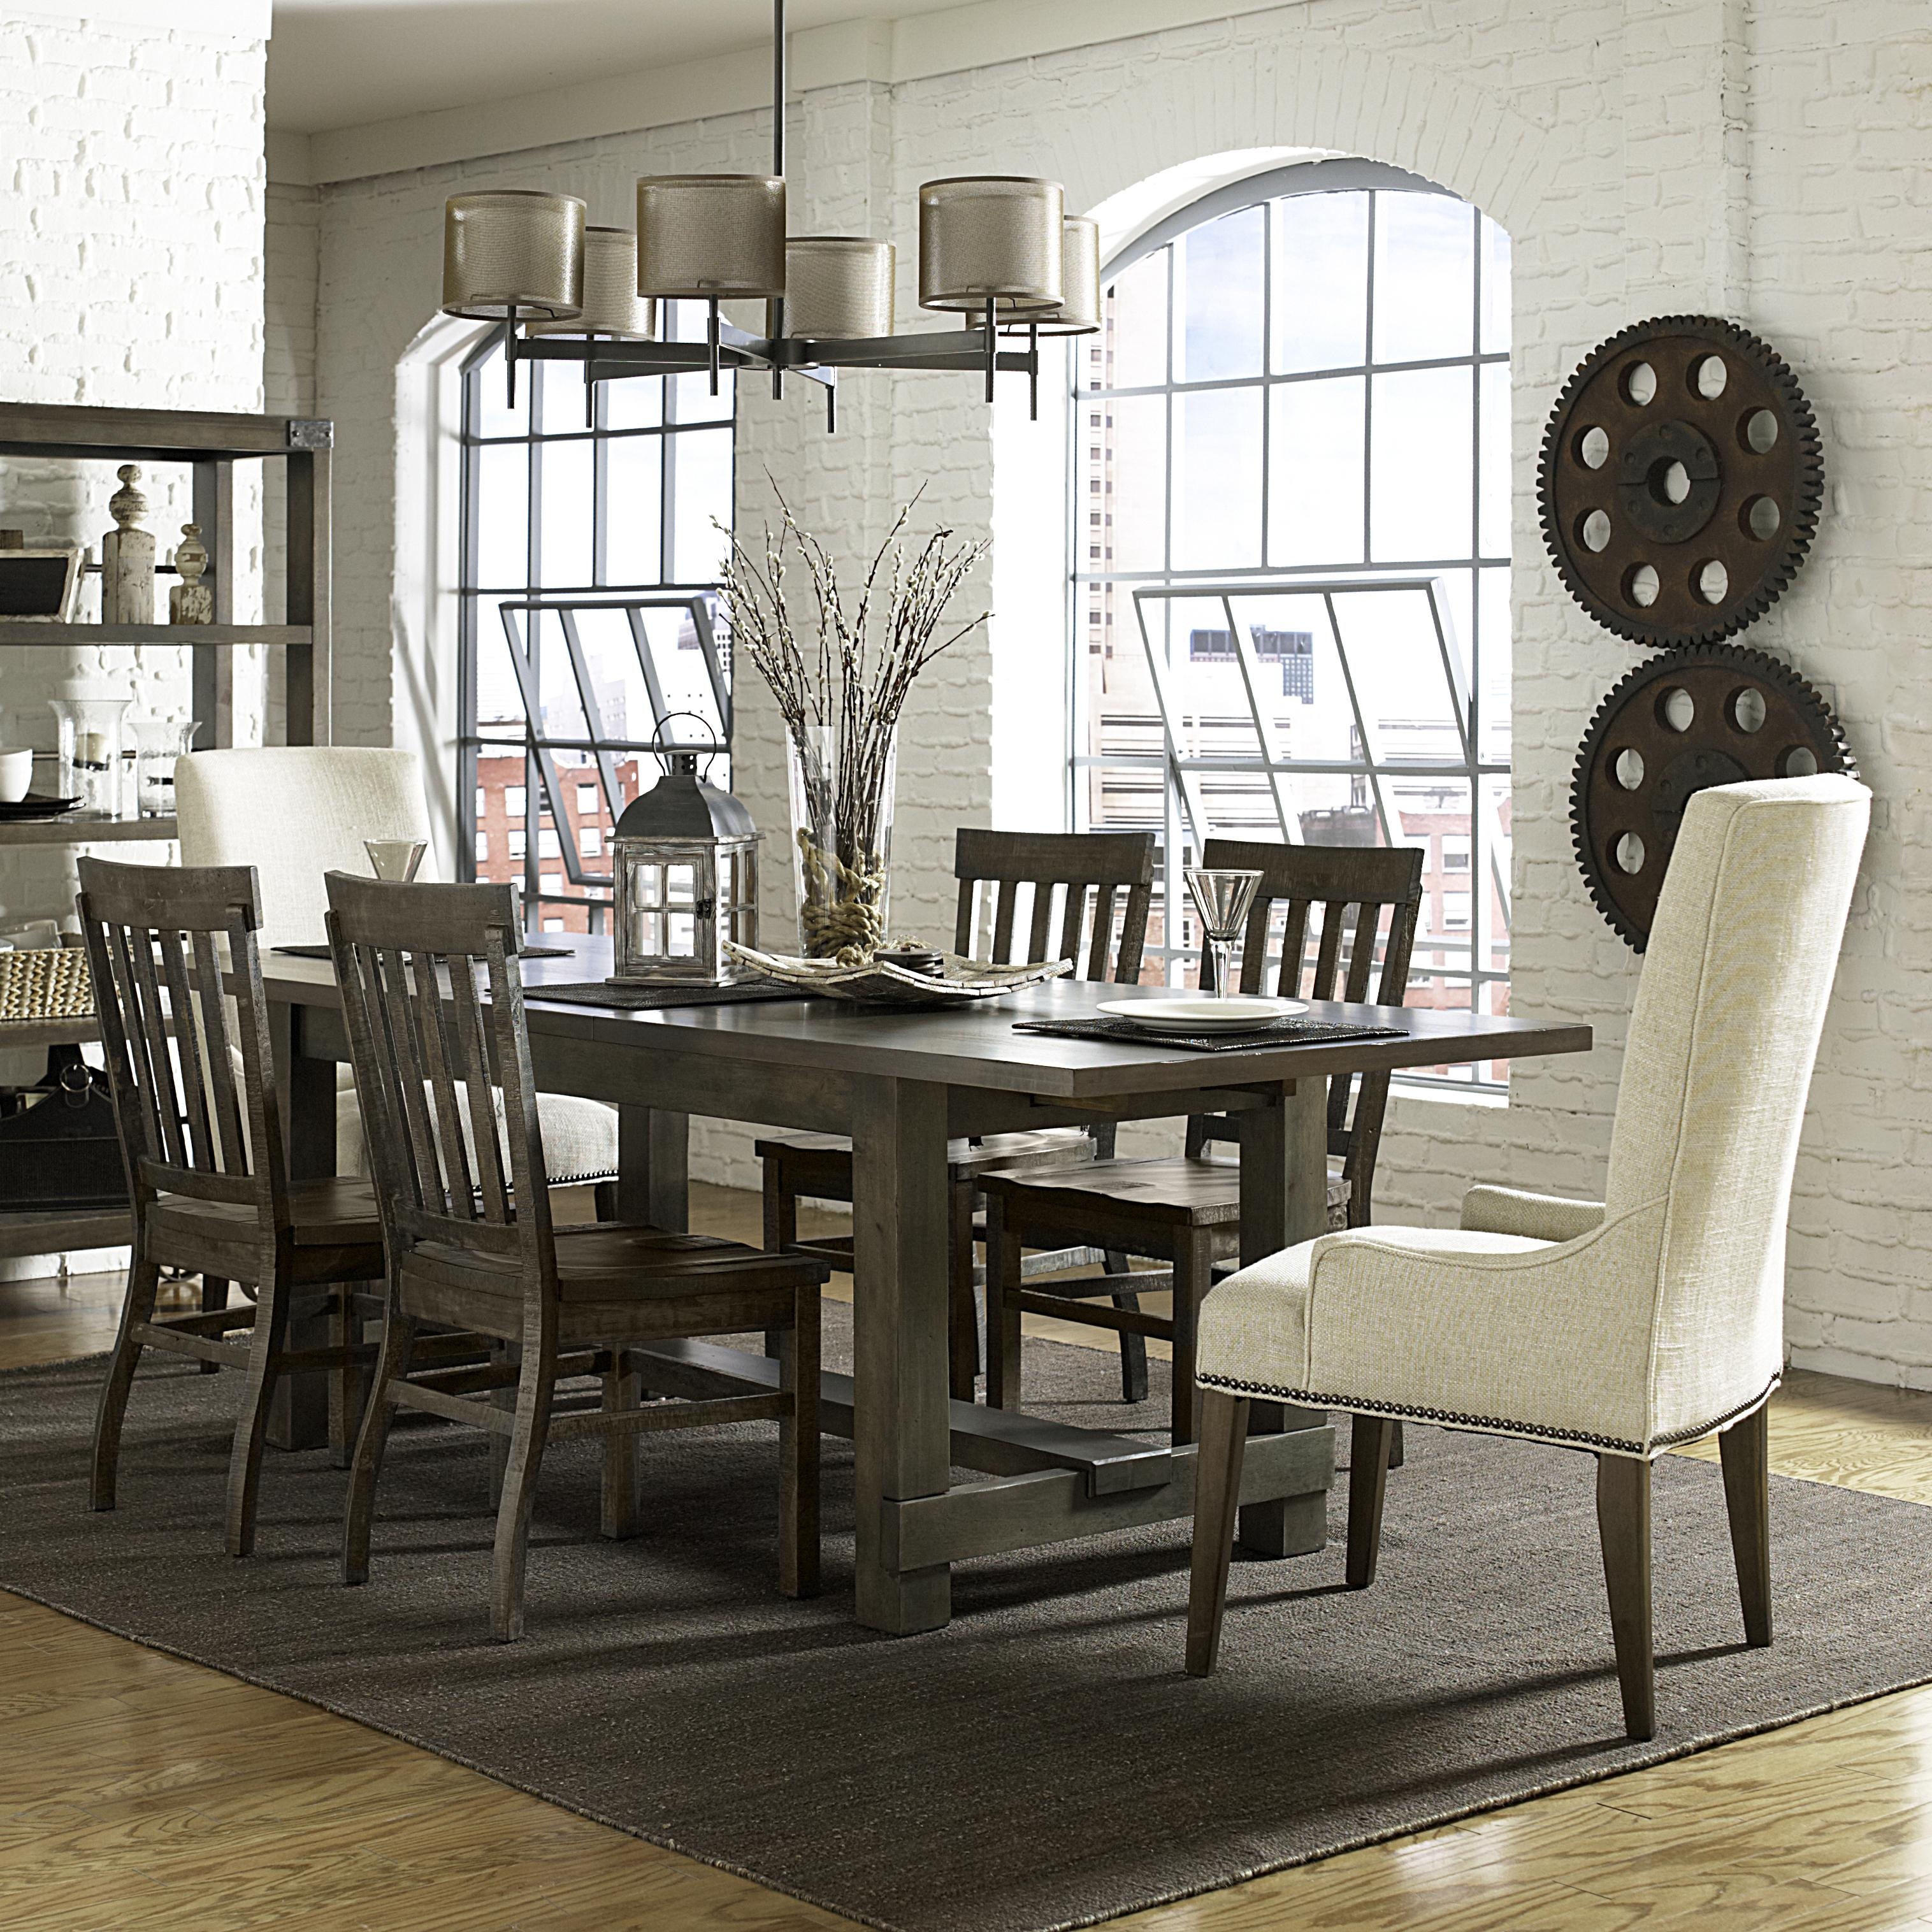 Belfort Select Karlin 7 Pc Dining Set - Item Number: D2471-22+4XD2471-60+2XD2503-63